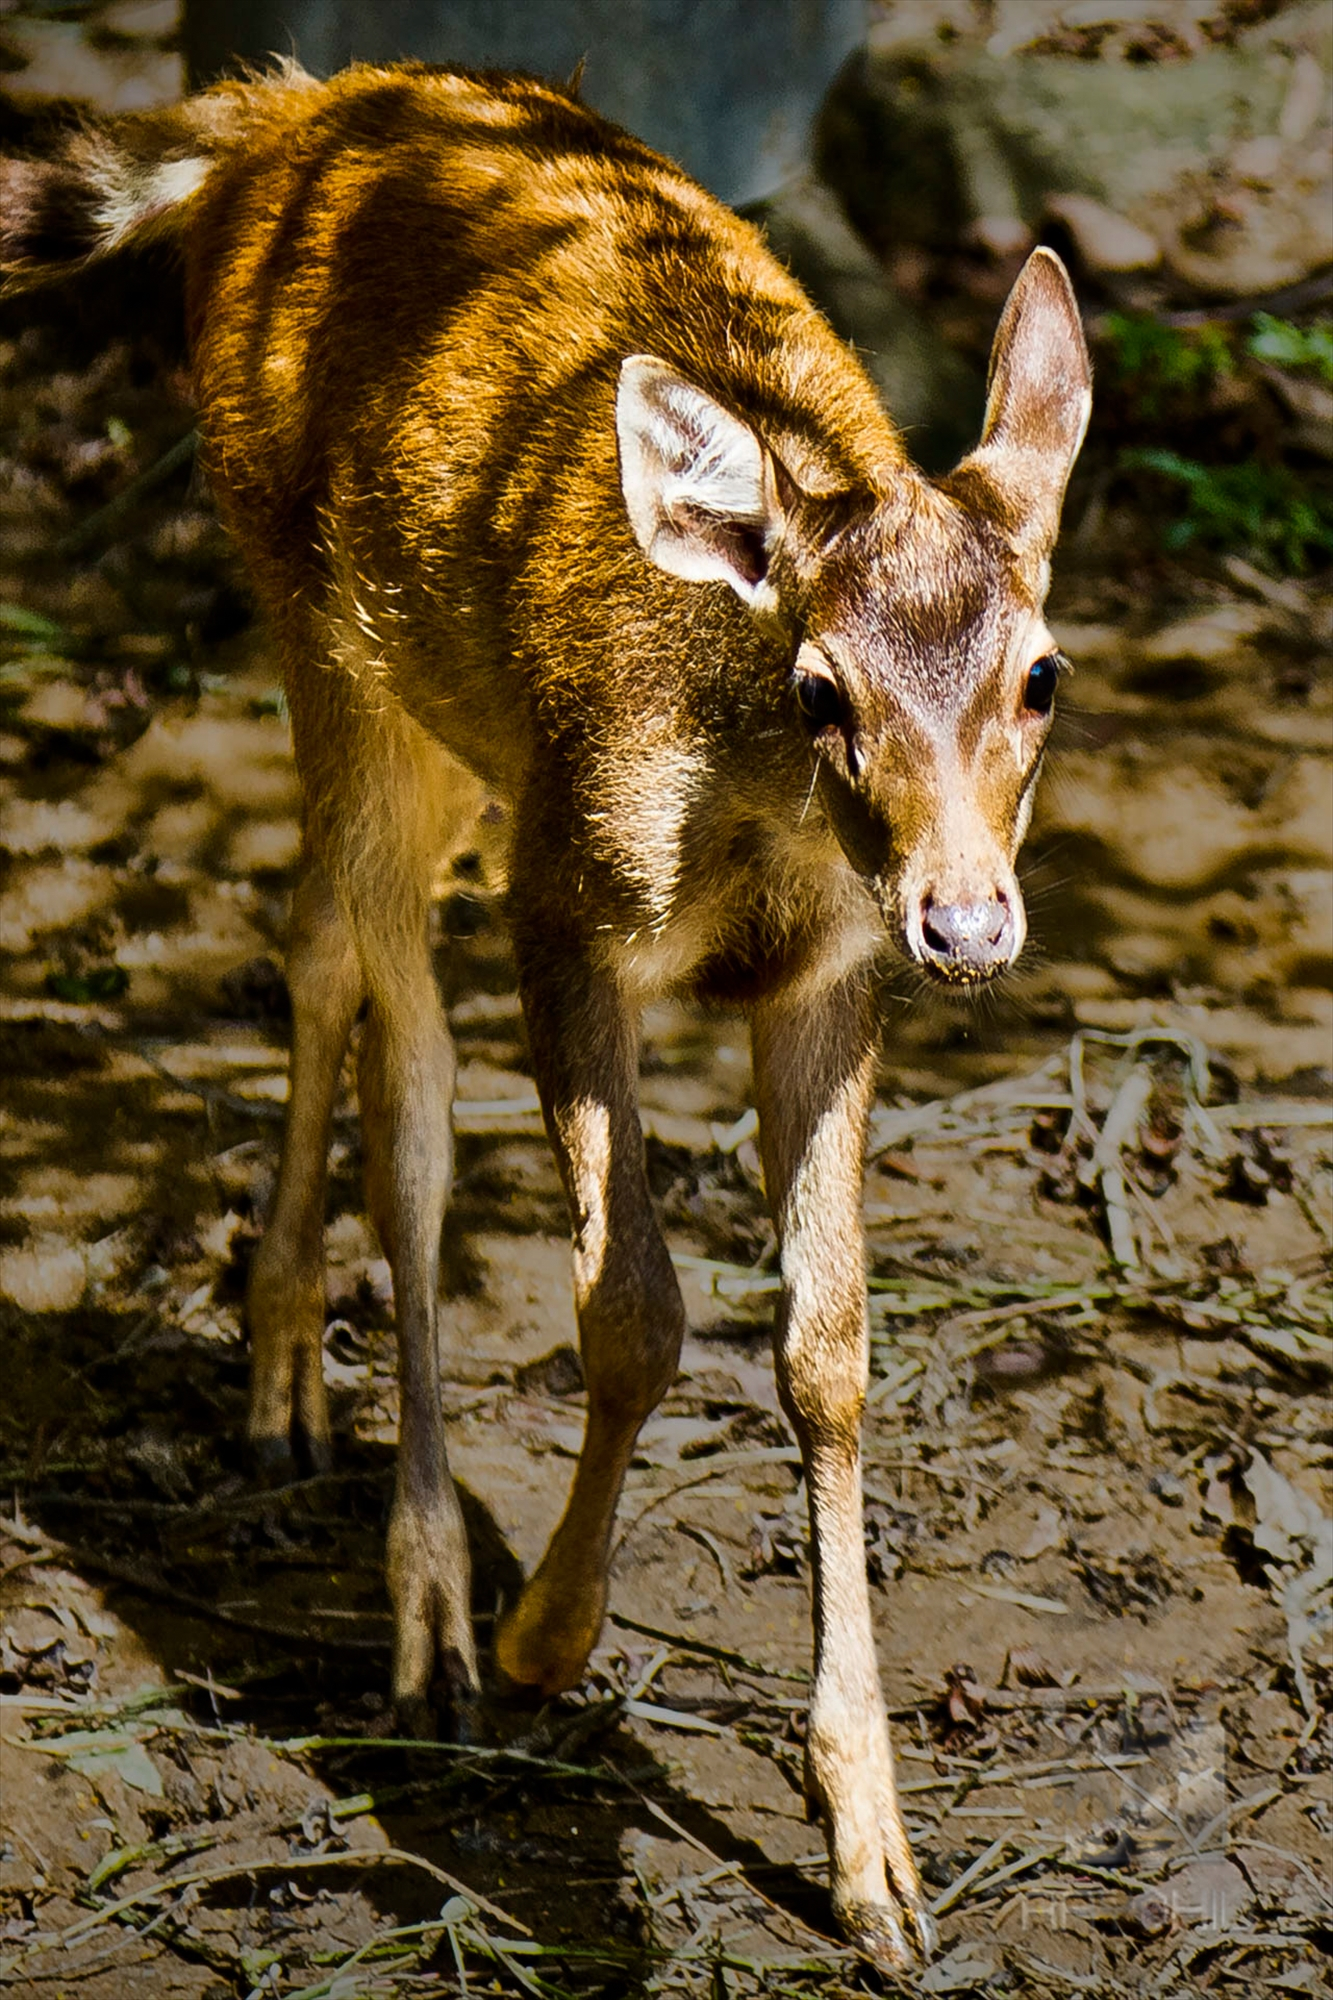 A hesitant Asian fawn.